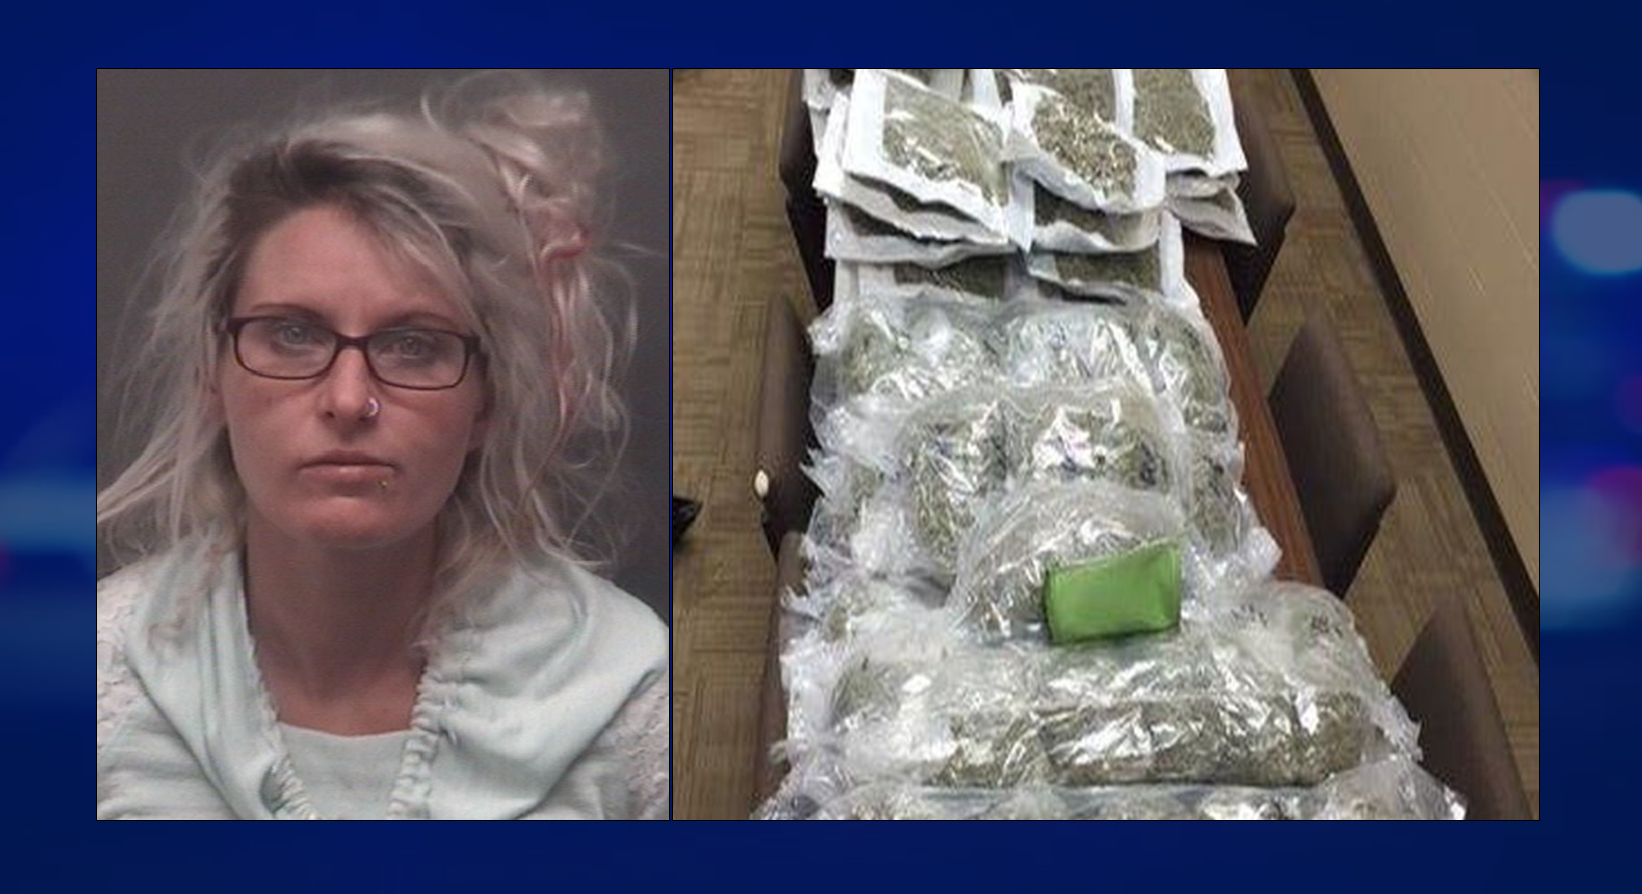 Over a Hundred Pounds of Pot Seized, Woman Faces Felony Charges